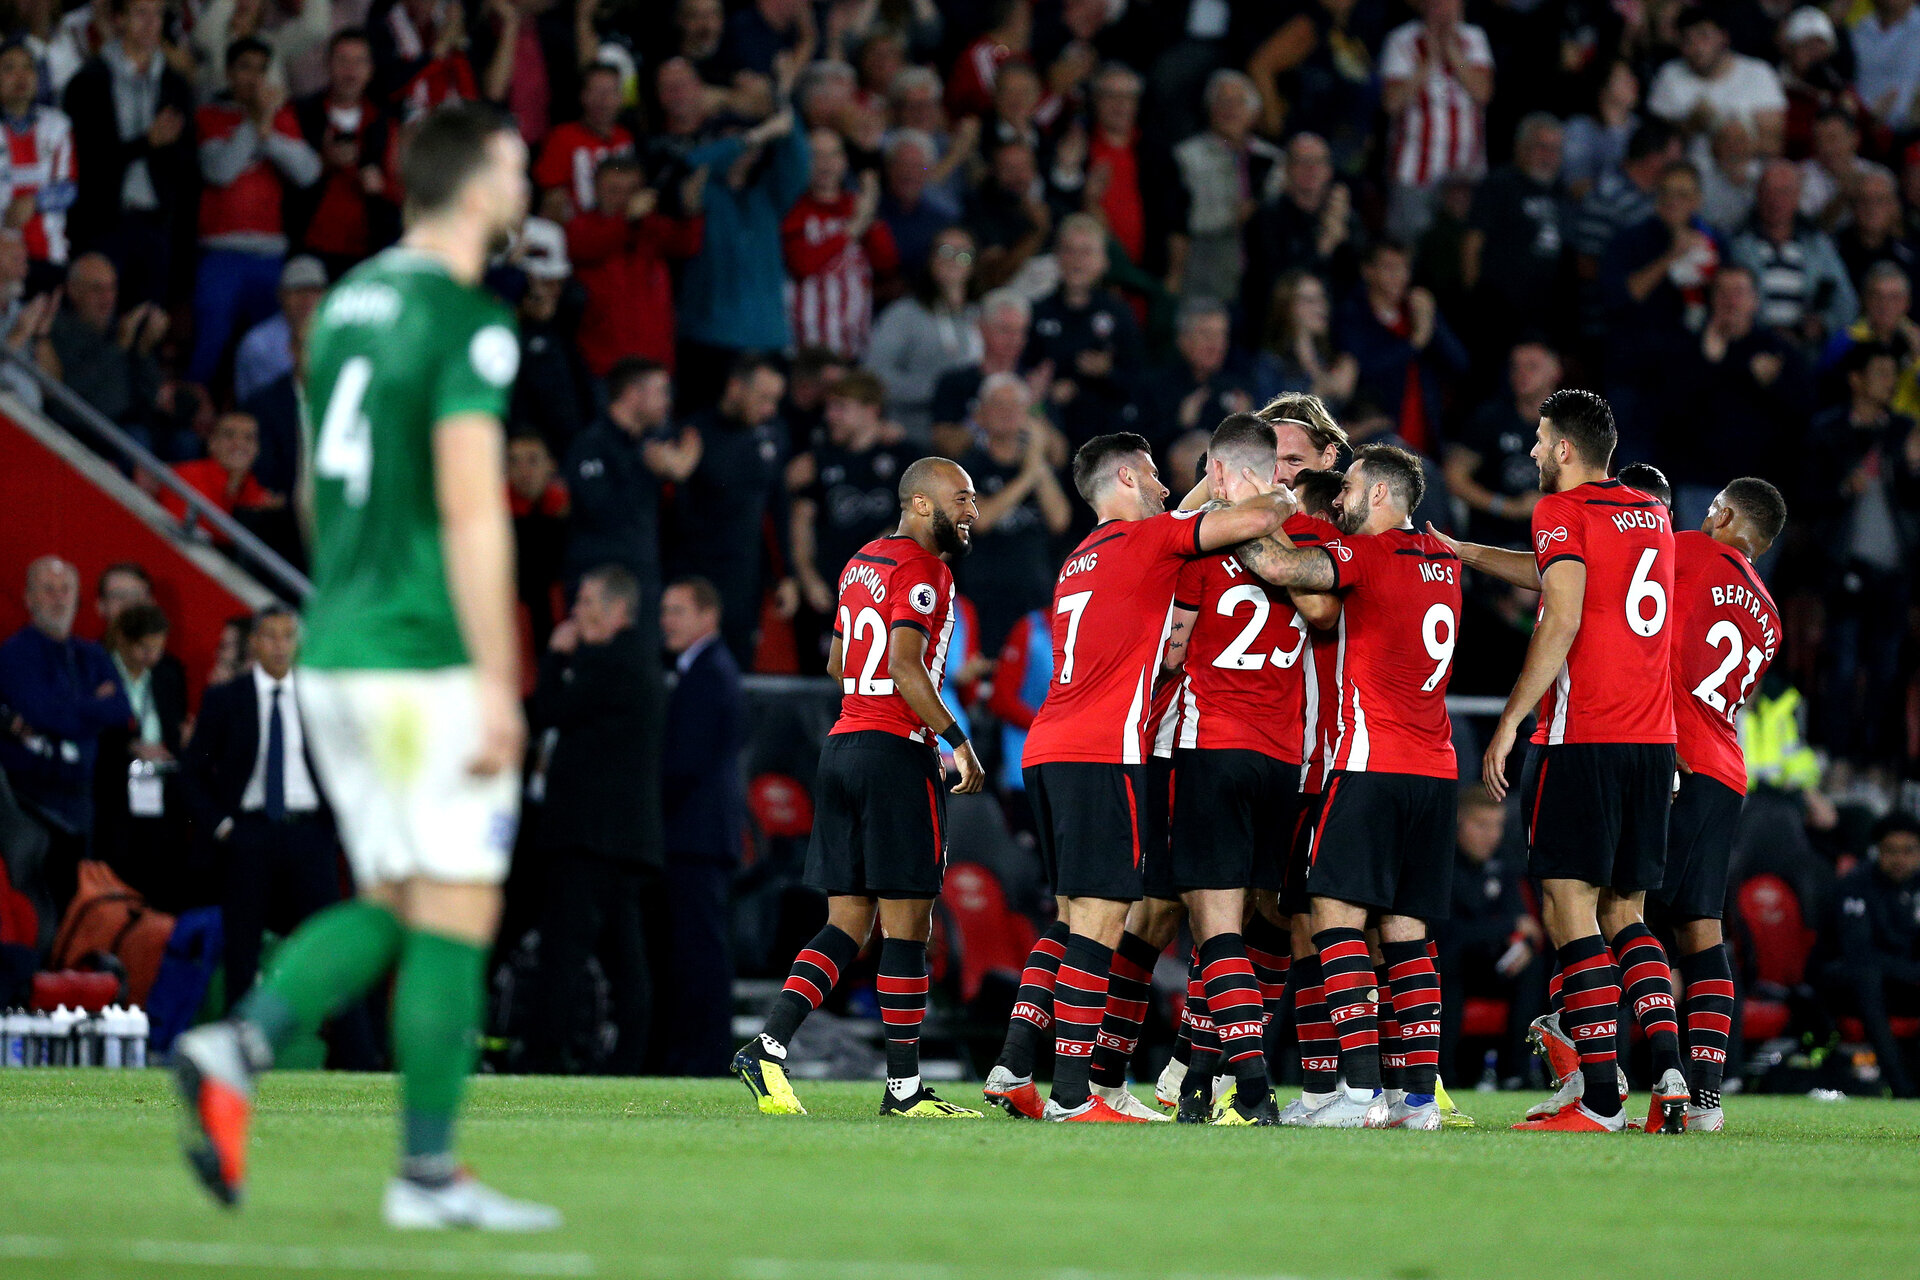 SOUTHAMPTON, ENGLAND - SEPTEMBER 17: Pierre-Emile Hojbjerg of Southampton celebrates after scoring his team's first goal with his team mates as Shane Duffy of Brighton and Hove Albion looks dejected during the Premier League match between Southampton FC and Brighton & Hove Albion at St Mary's Stadium on September 17, 2018 in Southampton, United Kingdom.  (Photo by Southampton FC/Southampton FC via Getty Images) *** Local Caption *** Pierre-Emile Hojbjerg SOUTHAMPTON, ENGLAND - SEPTEMBER 17: Pierre-Emile Hojbjerg of Southampton celebrates after scoring his team's first goal with his team mates as Shane Duffy of Brighton and Hove Albion looks dejected during the Premier League match between Southampton FC and Brighton & Hove Albion at St Mary's Stadium on September 17, 2018 in Southampton, United Kingdom.  (Photo by Southampton FC/Southampton FC via Getty Images)